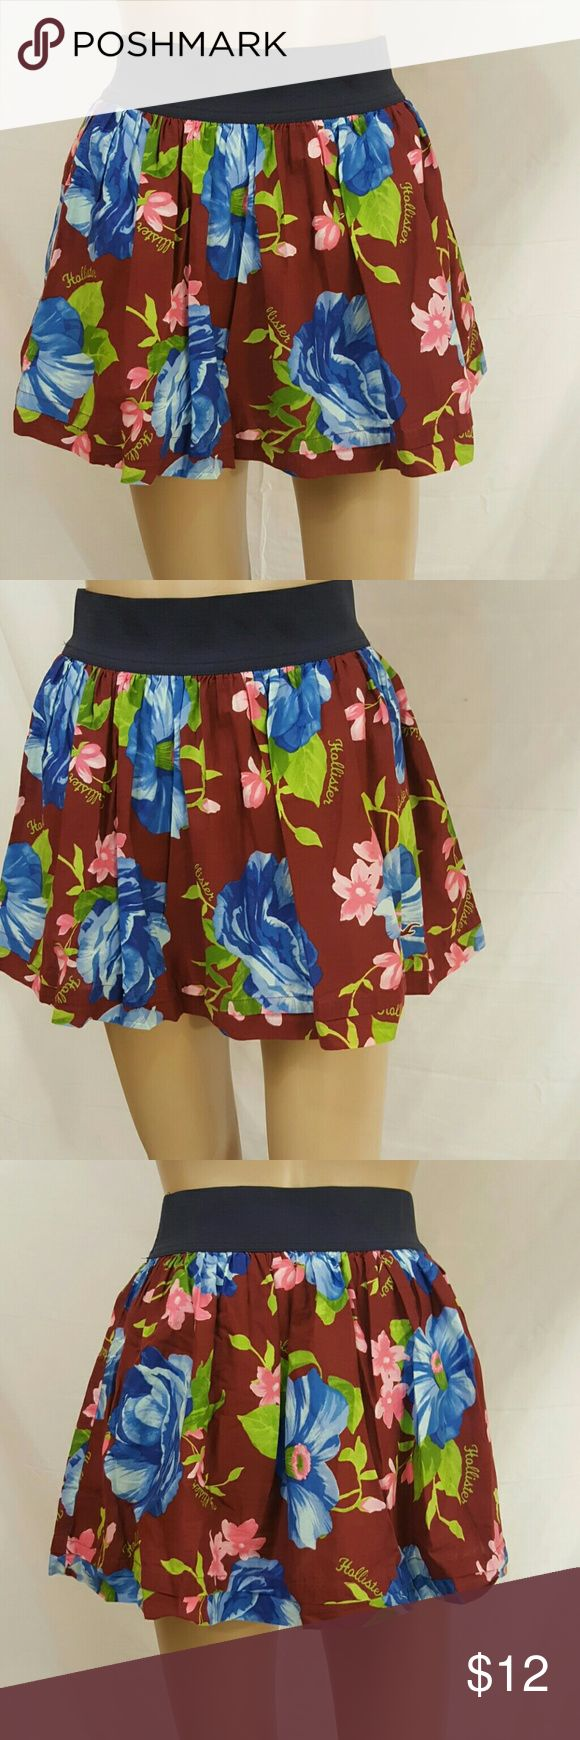 Hollister Skirt Maroon background Blue Flowers Hollister Skirts Mini